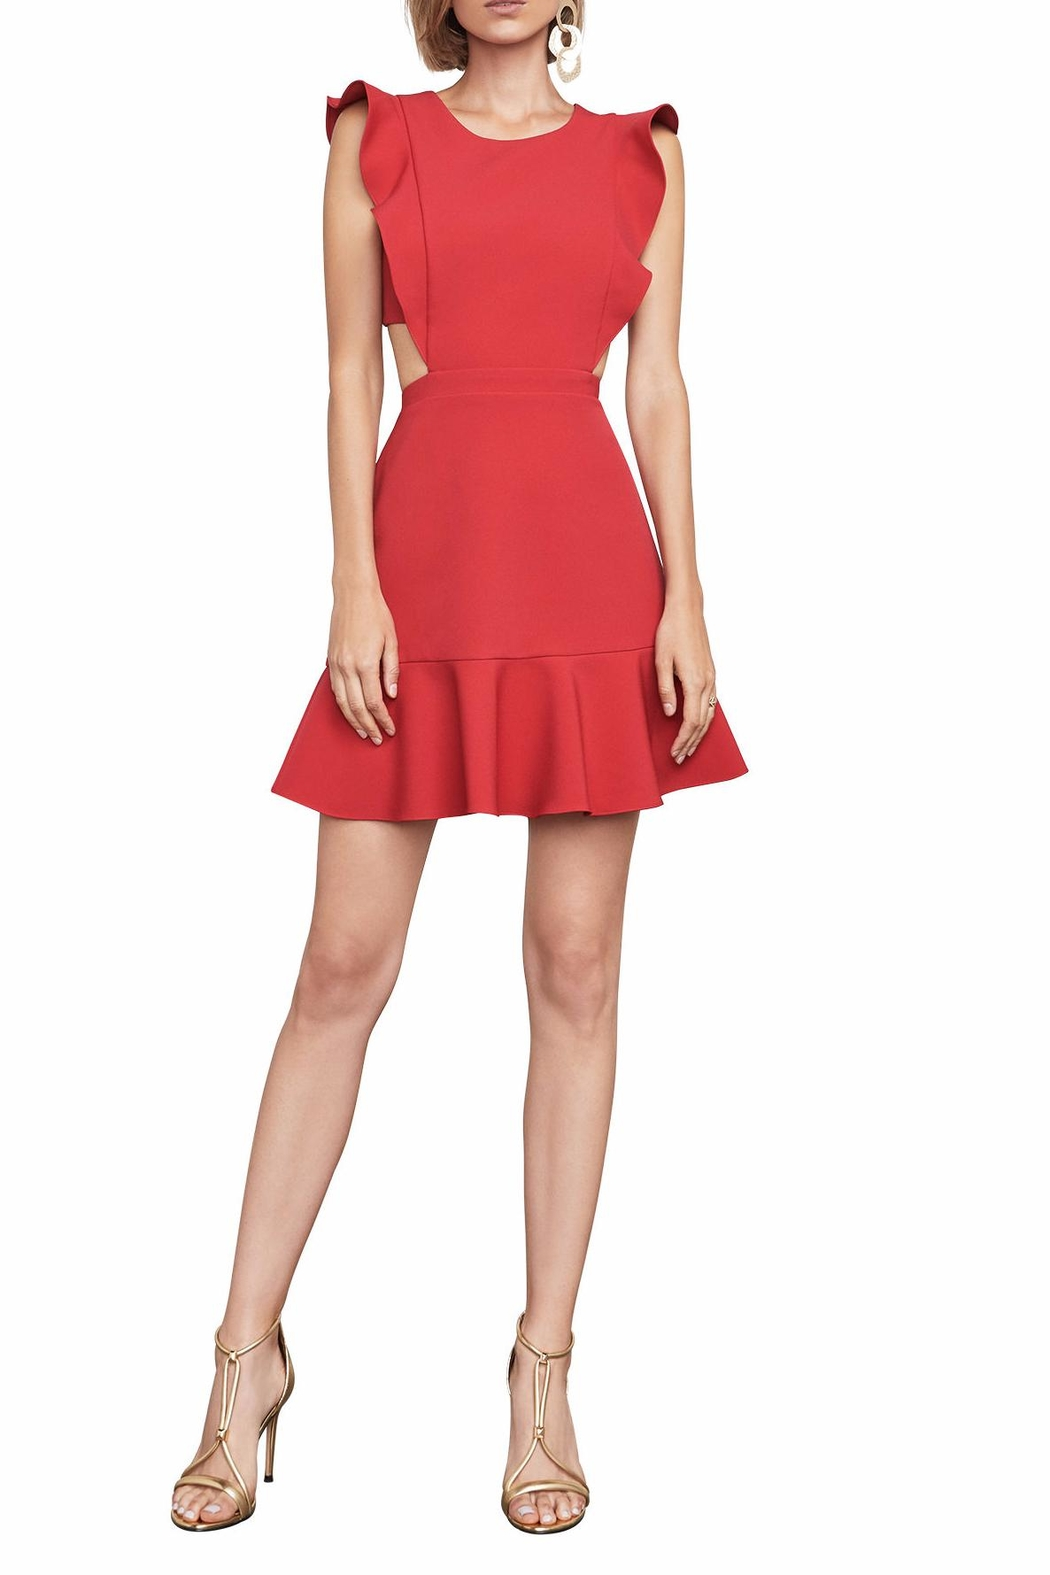 BCBG Max Azria Nicole Cutout Dress - Front Cropped Image